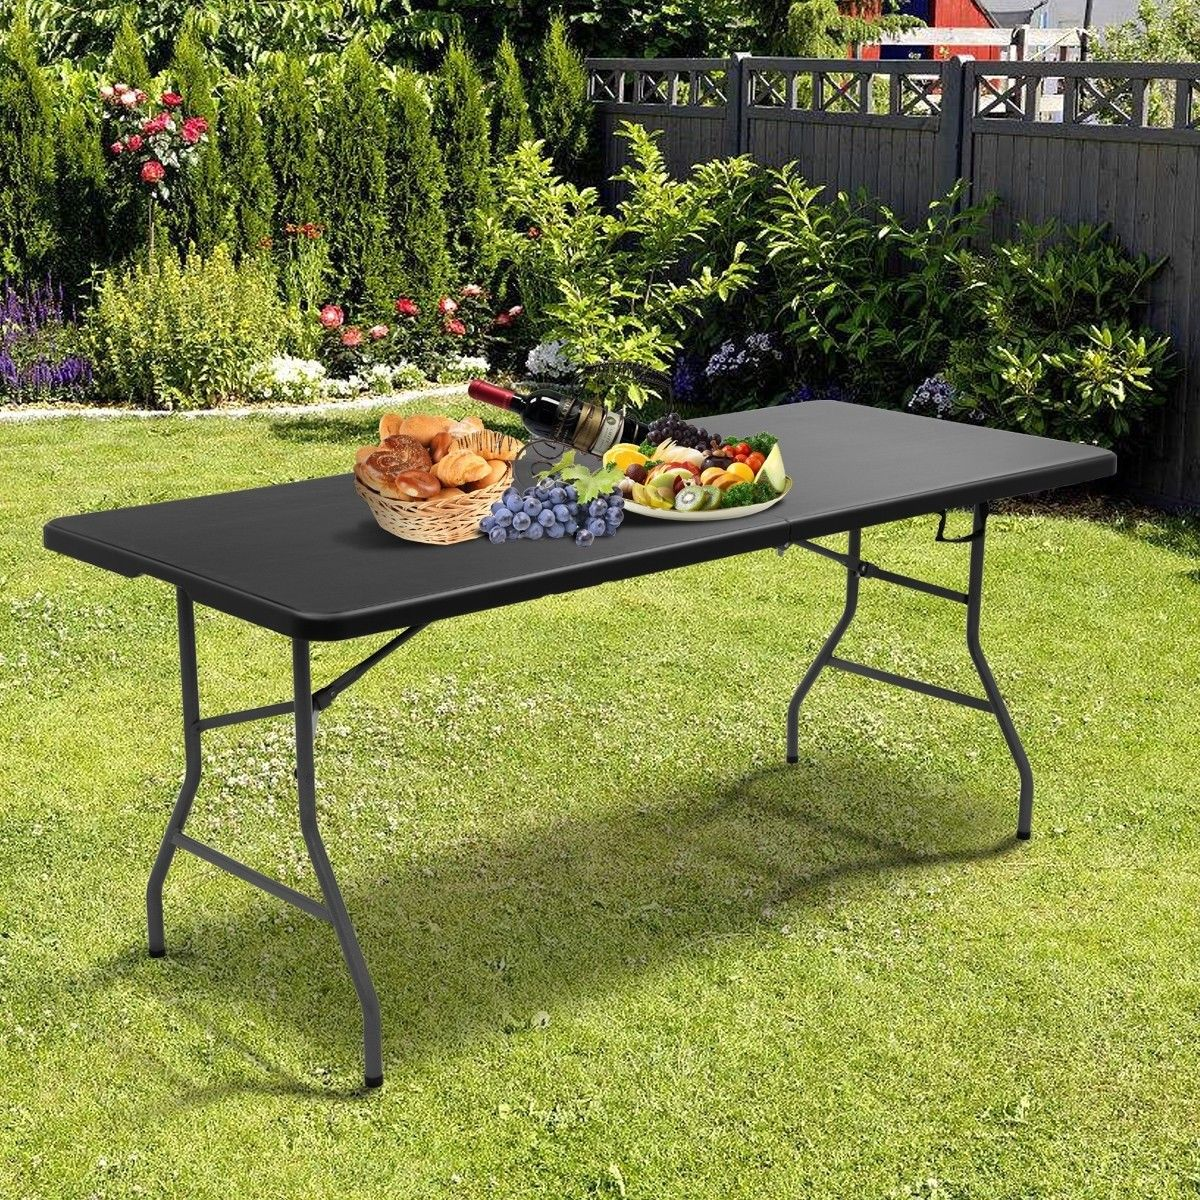 6 Folding Portable Plastic Outdoor Camp Table Plastic Picnic Tables Folding Table Camping Table